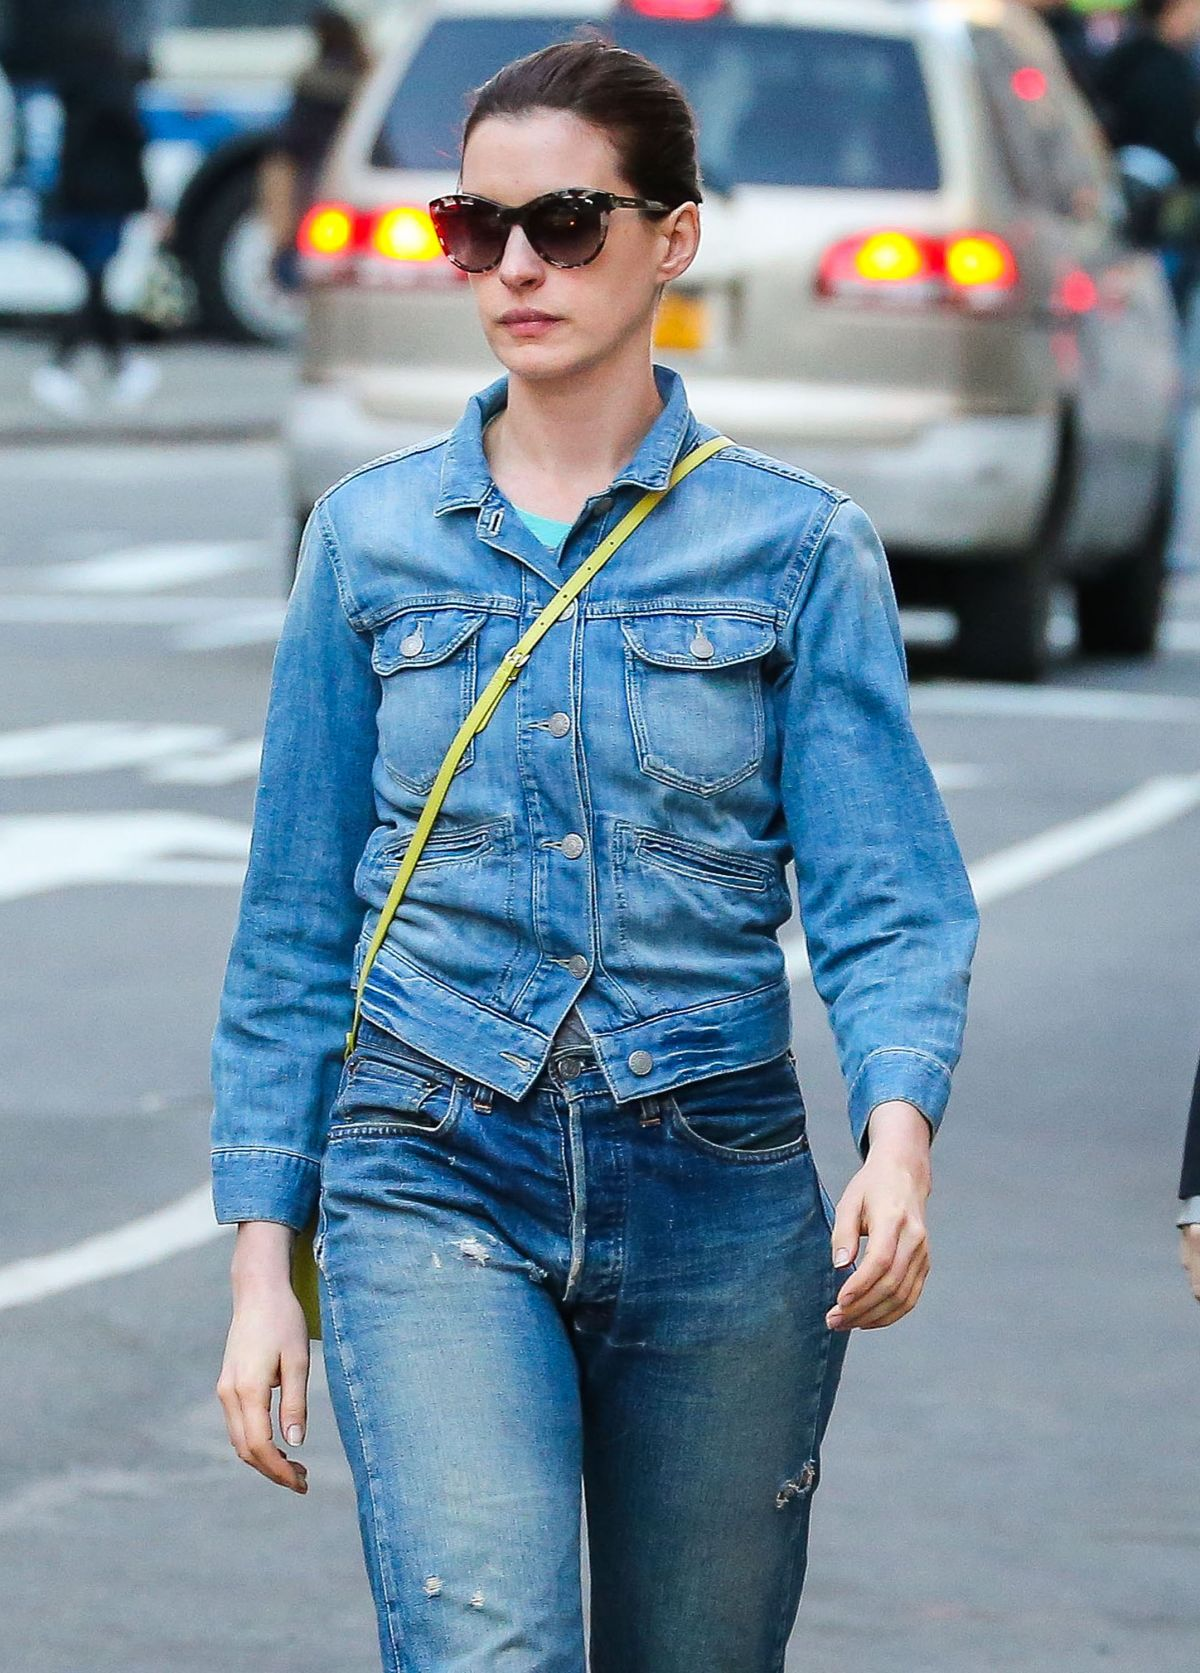 ANNE HATHAWAY in Jeans Out and About in New York